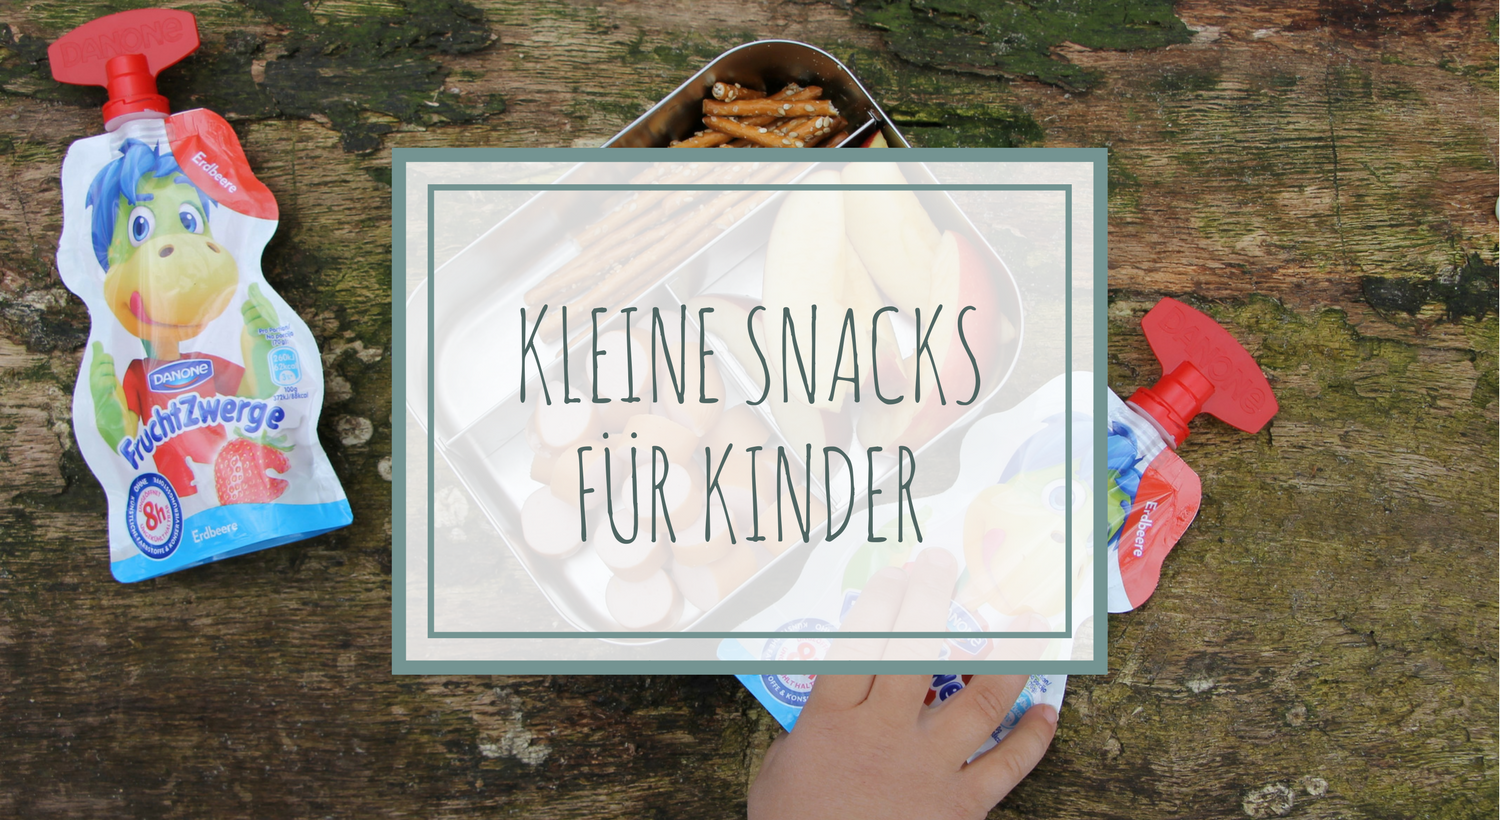 anzeige kleine snacks f r kinder ideen f r unterwegs in kooperation mit fruchtzwerge. Black Bedroom Furniture Sets. Home Design Ideas